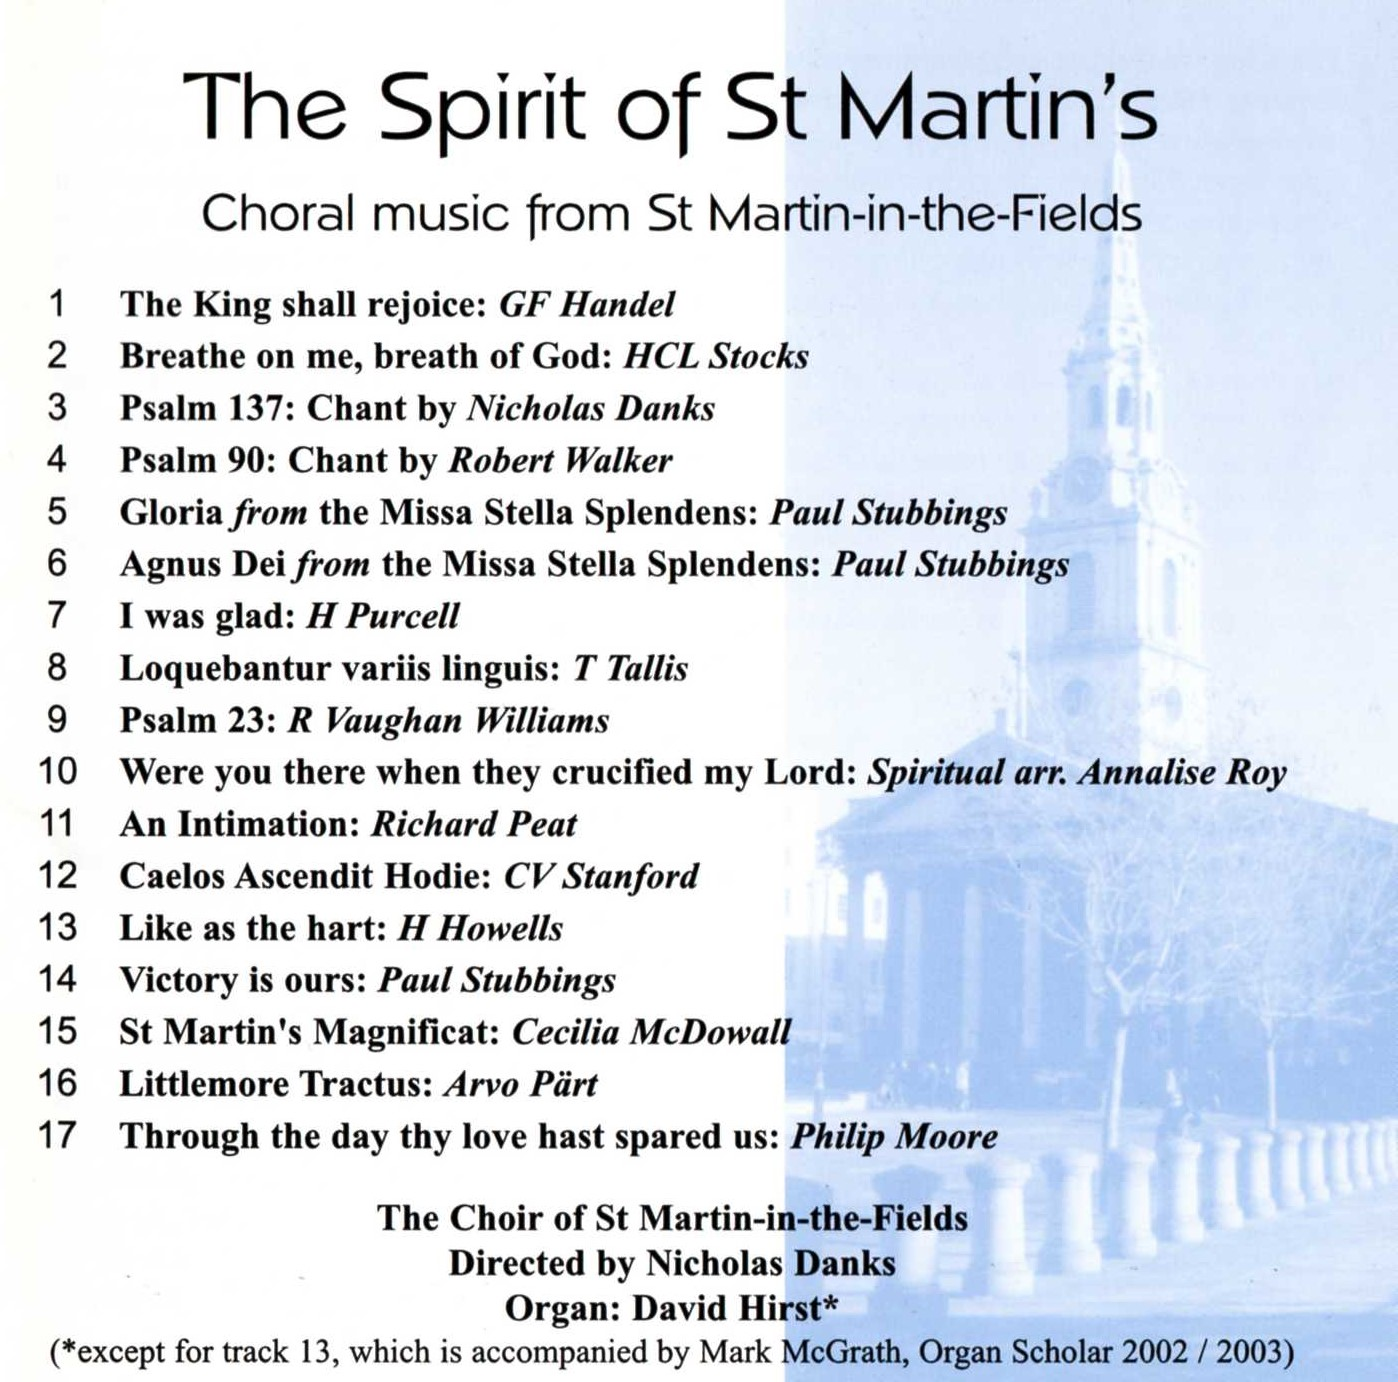 The Spirit of St Martin's (Choral music from St Martin-in-the-Fields) back cover